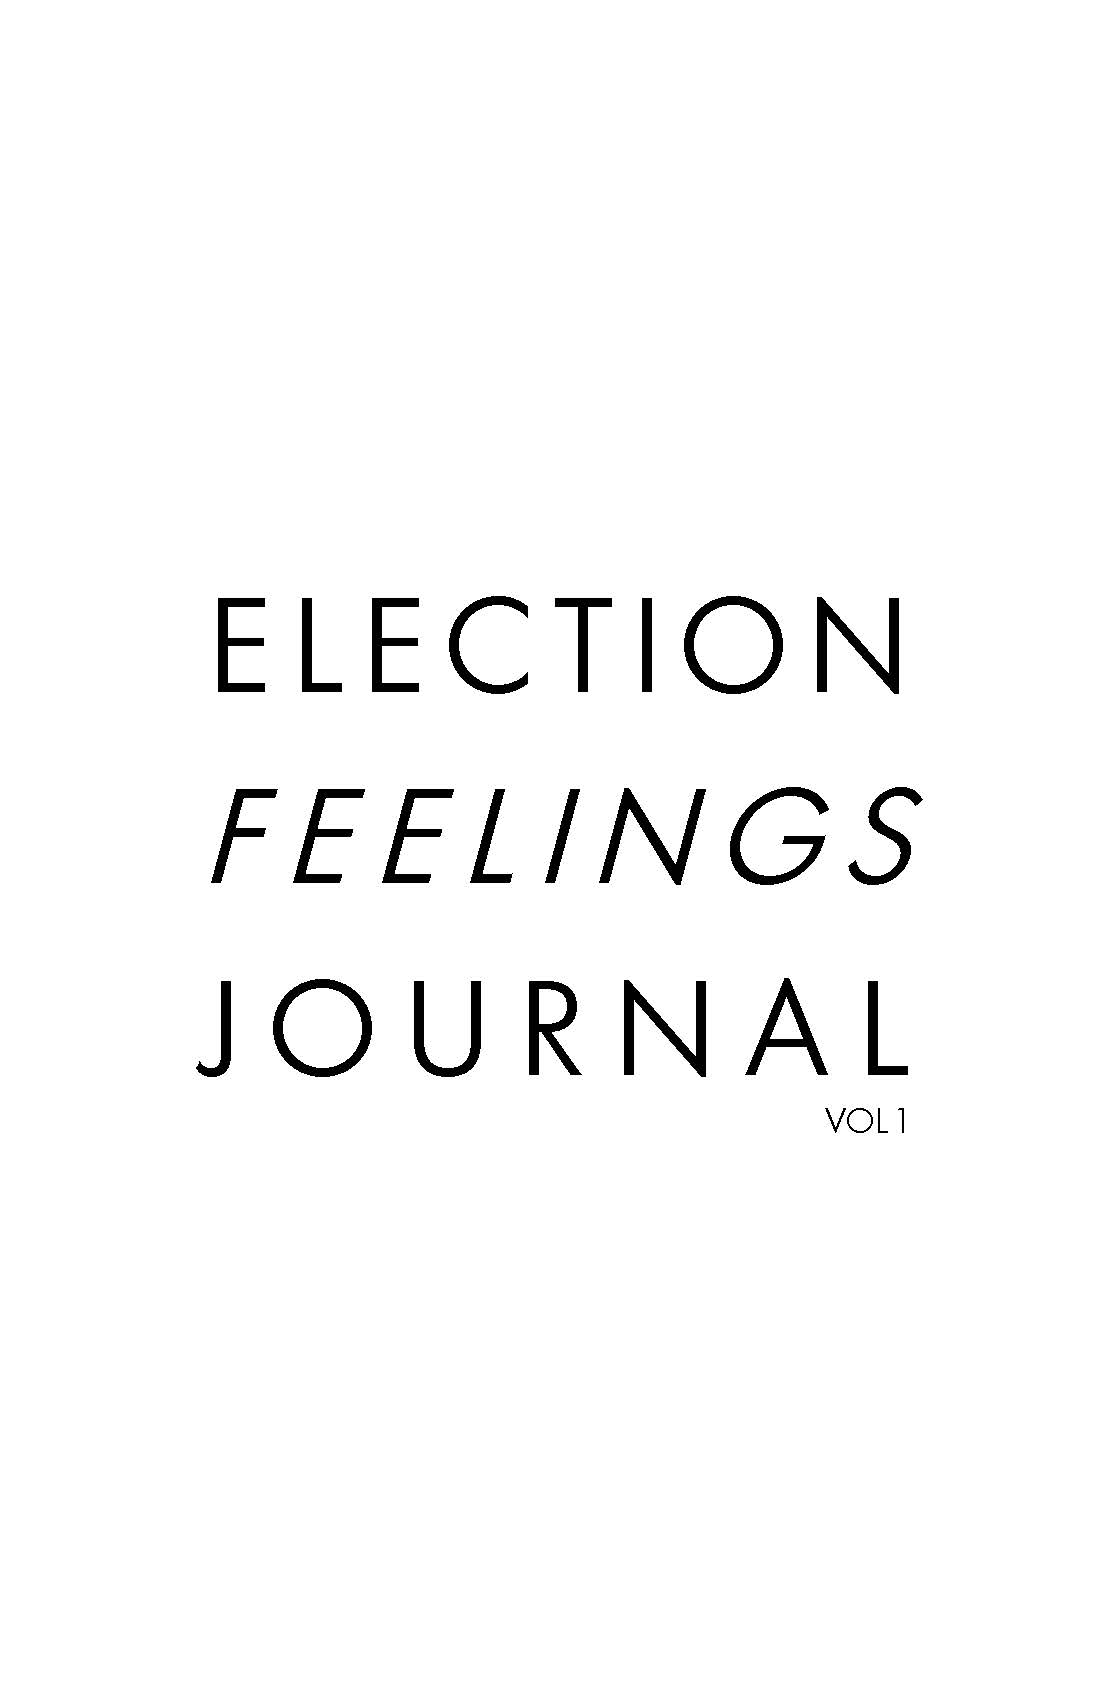 Election Feelings Journal ZIne_Page_01.jpg